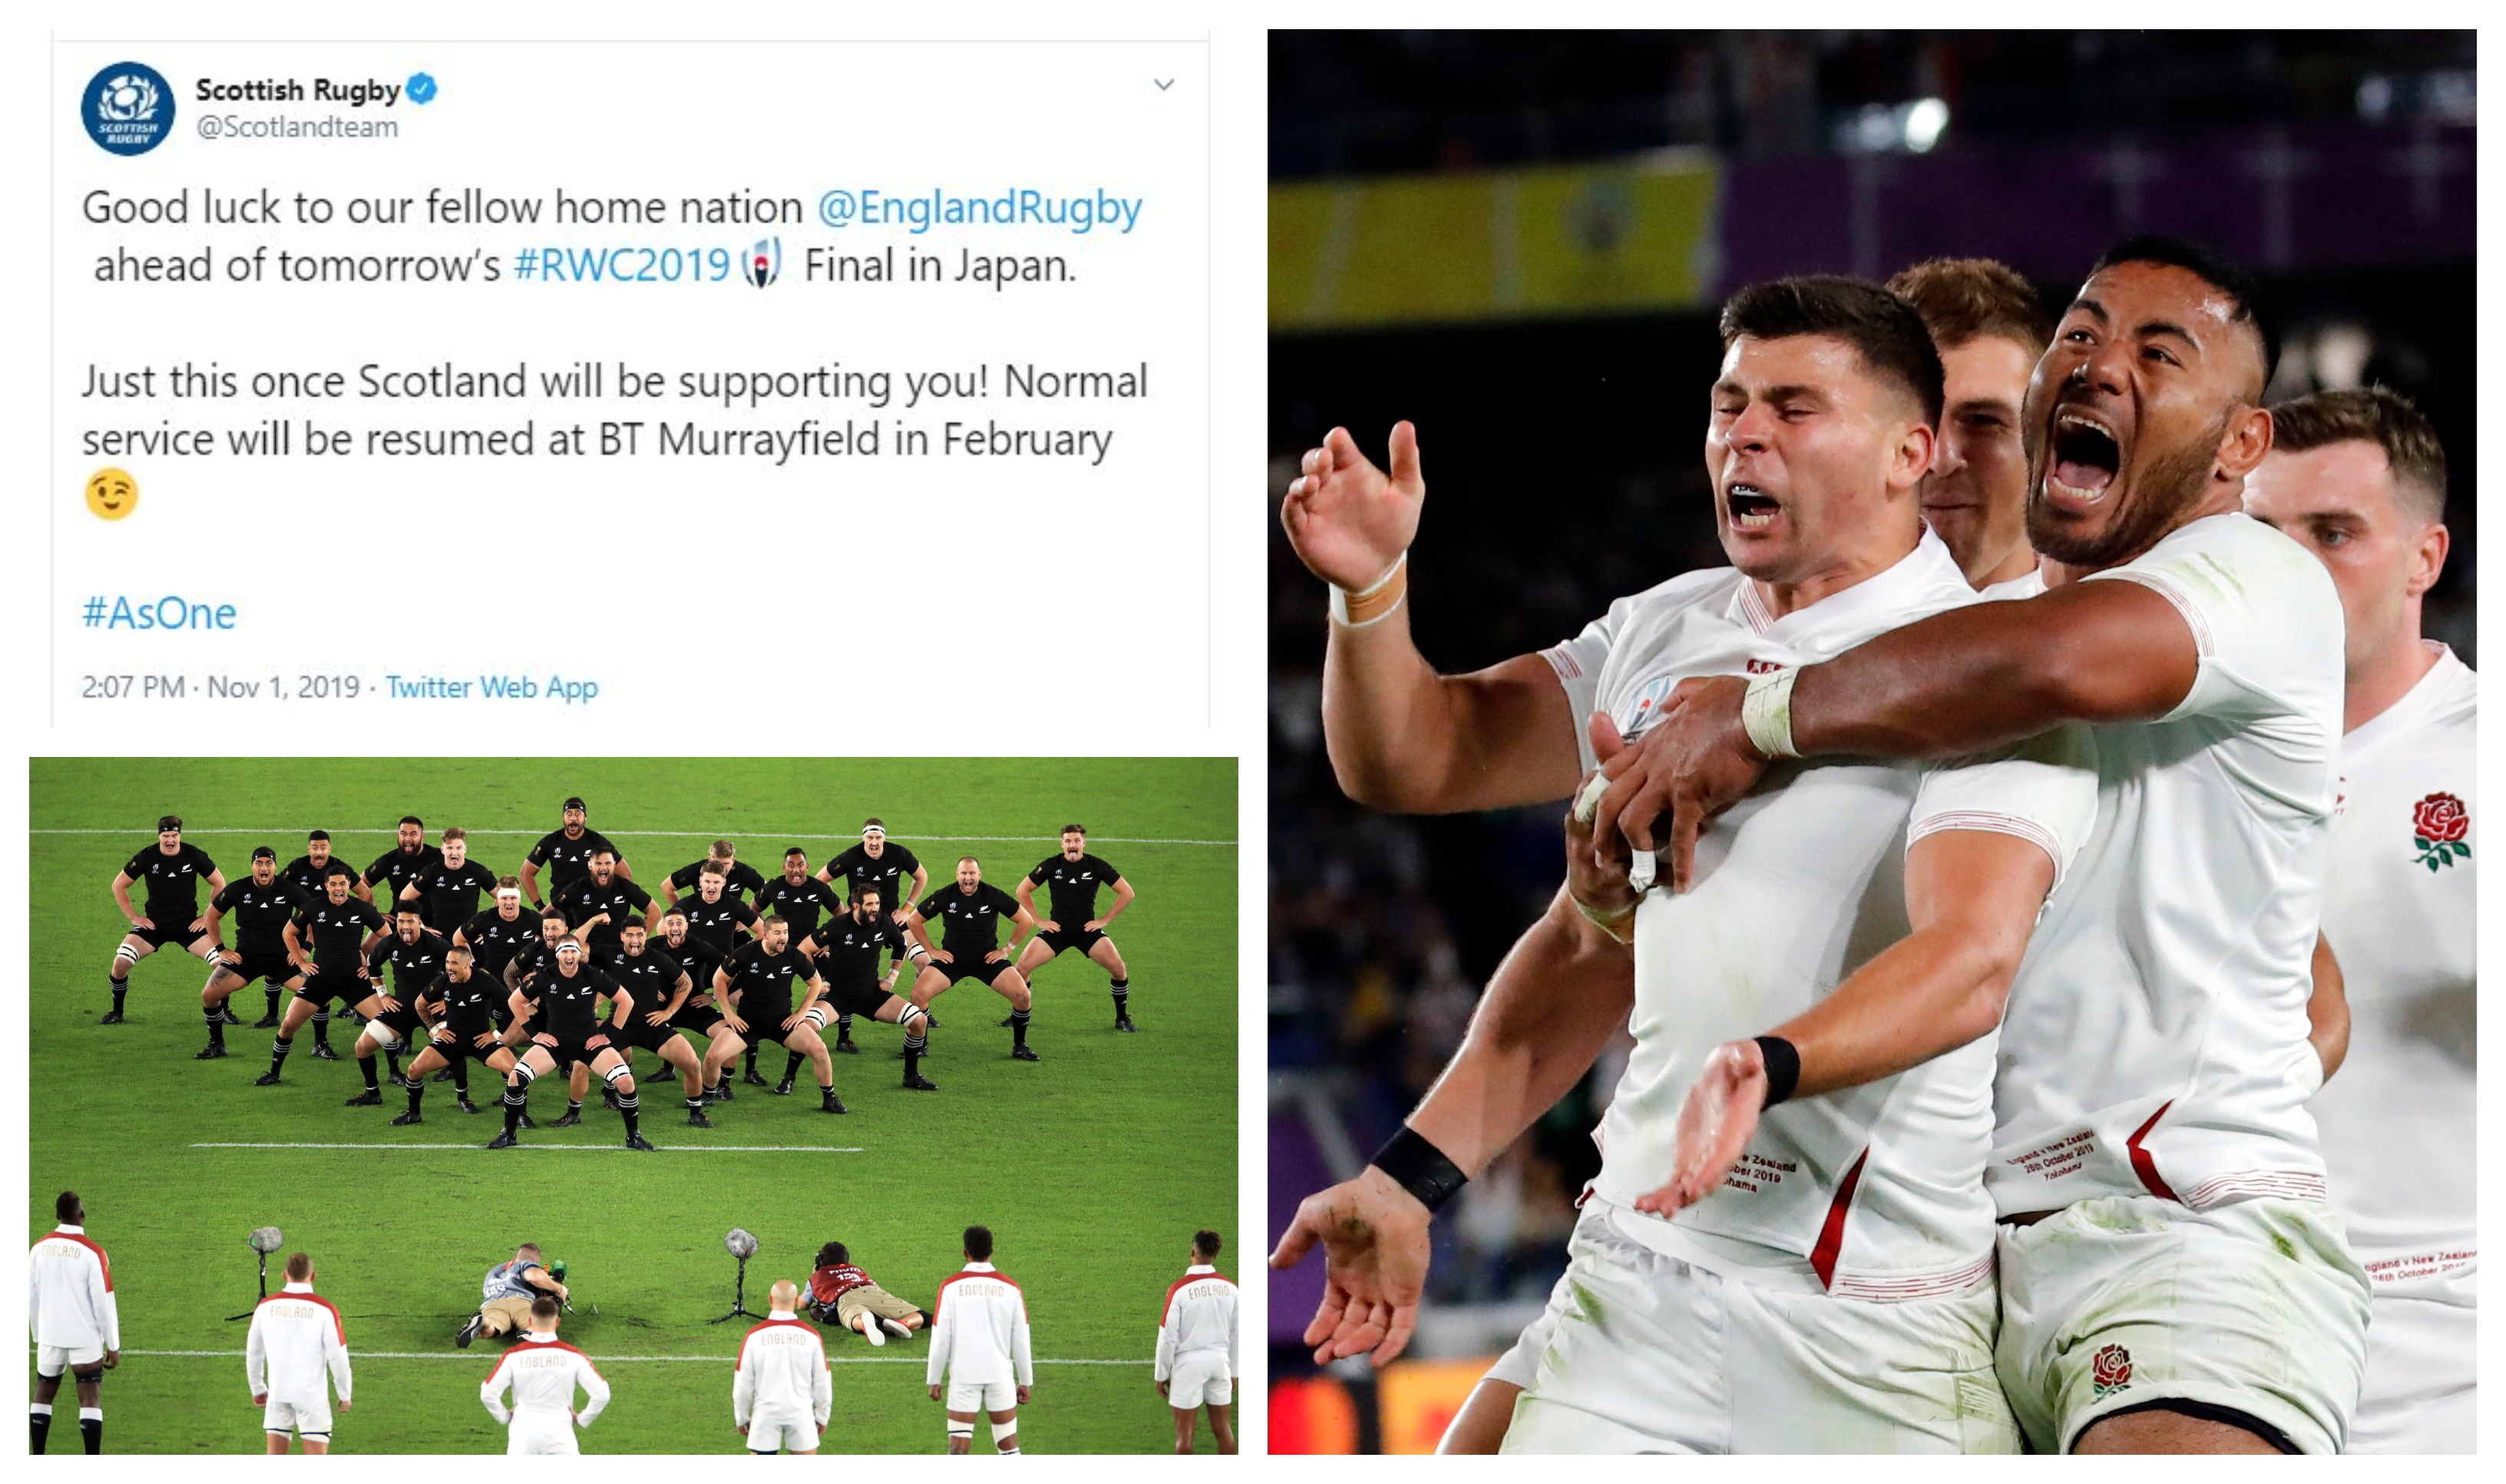 Scottish Rugby's official account has backed England in the Rugby World Cup final.